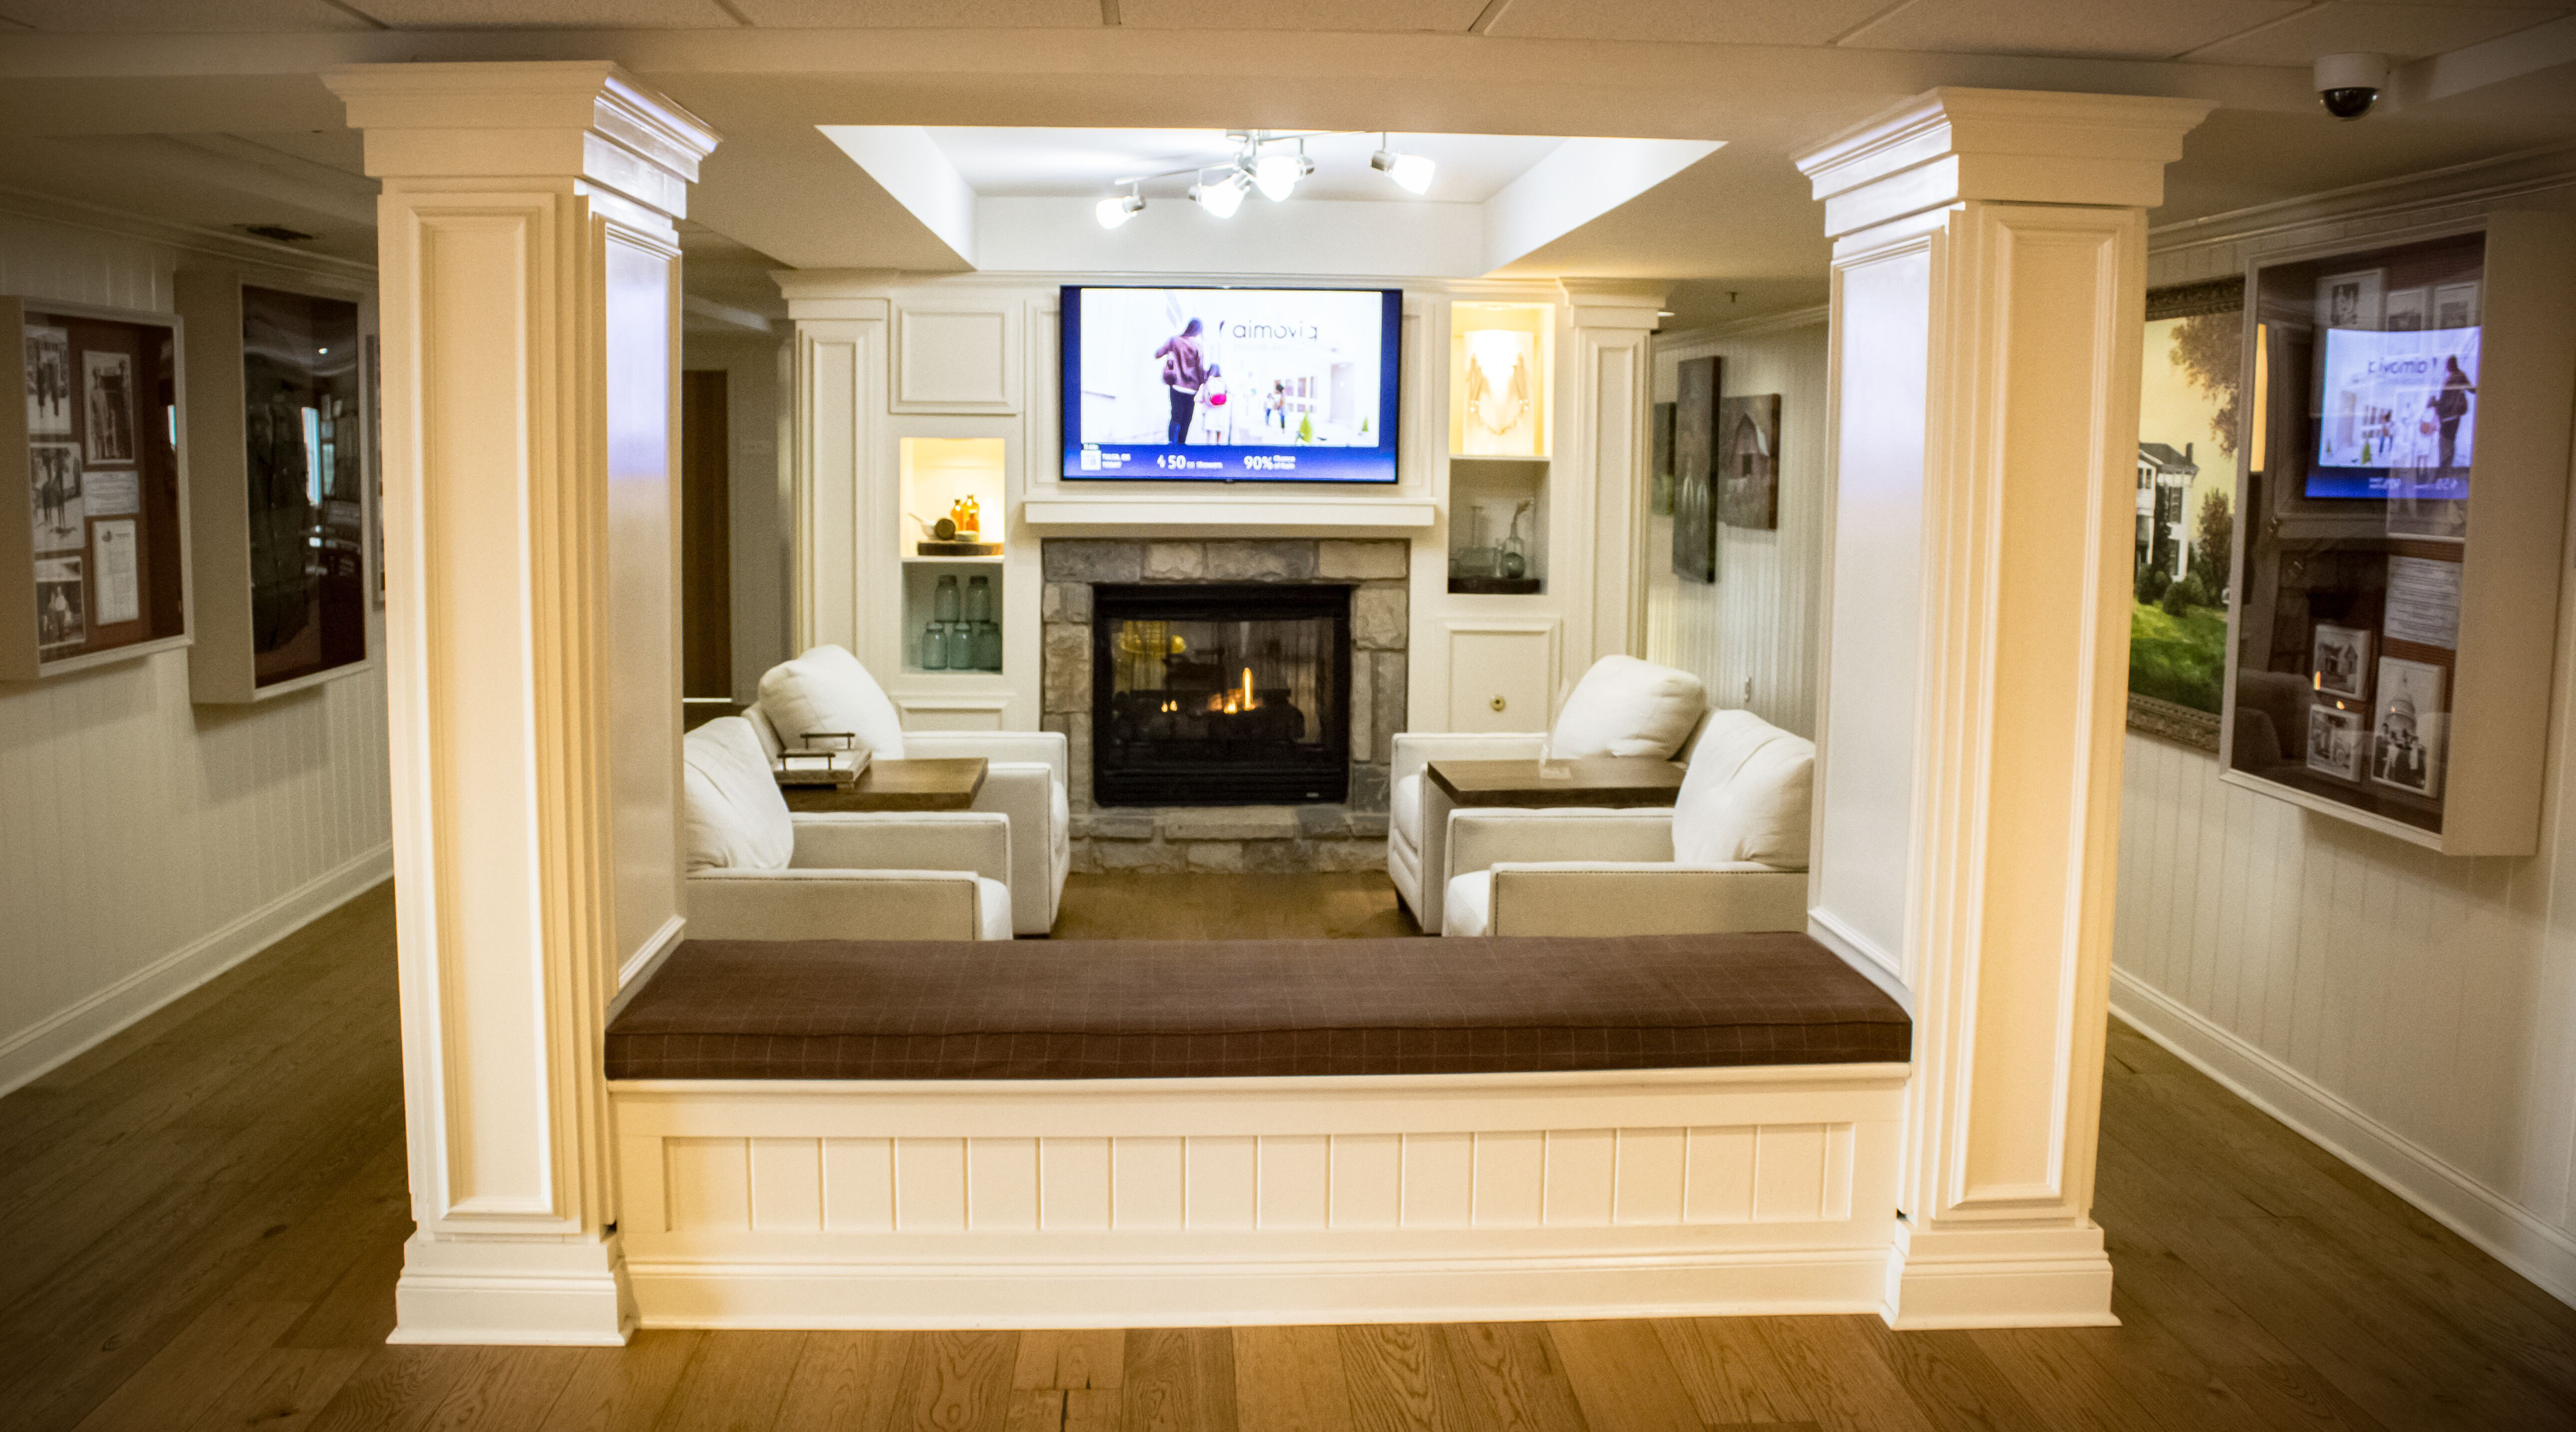 The Cozy Sitting Area In The Lobby Is Great To Relax After A Long